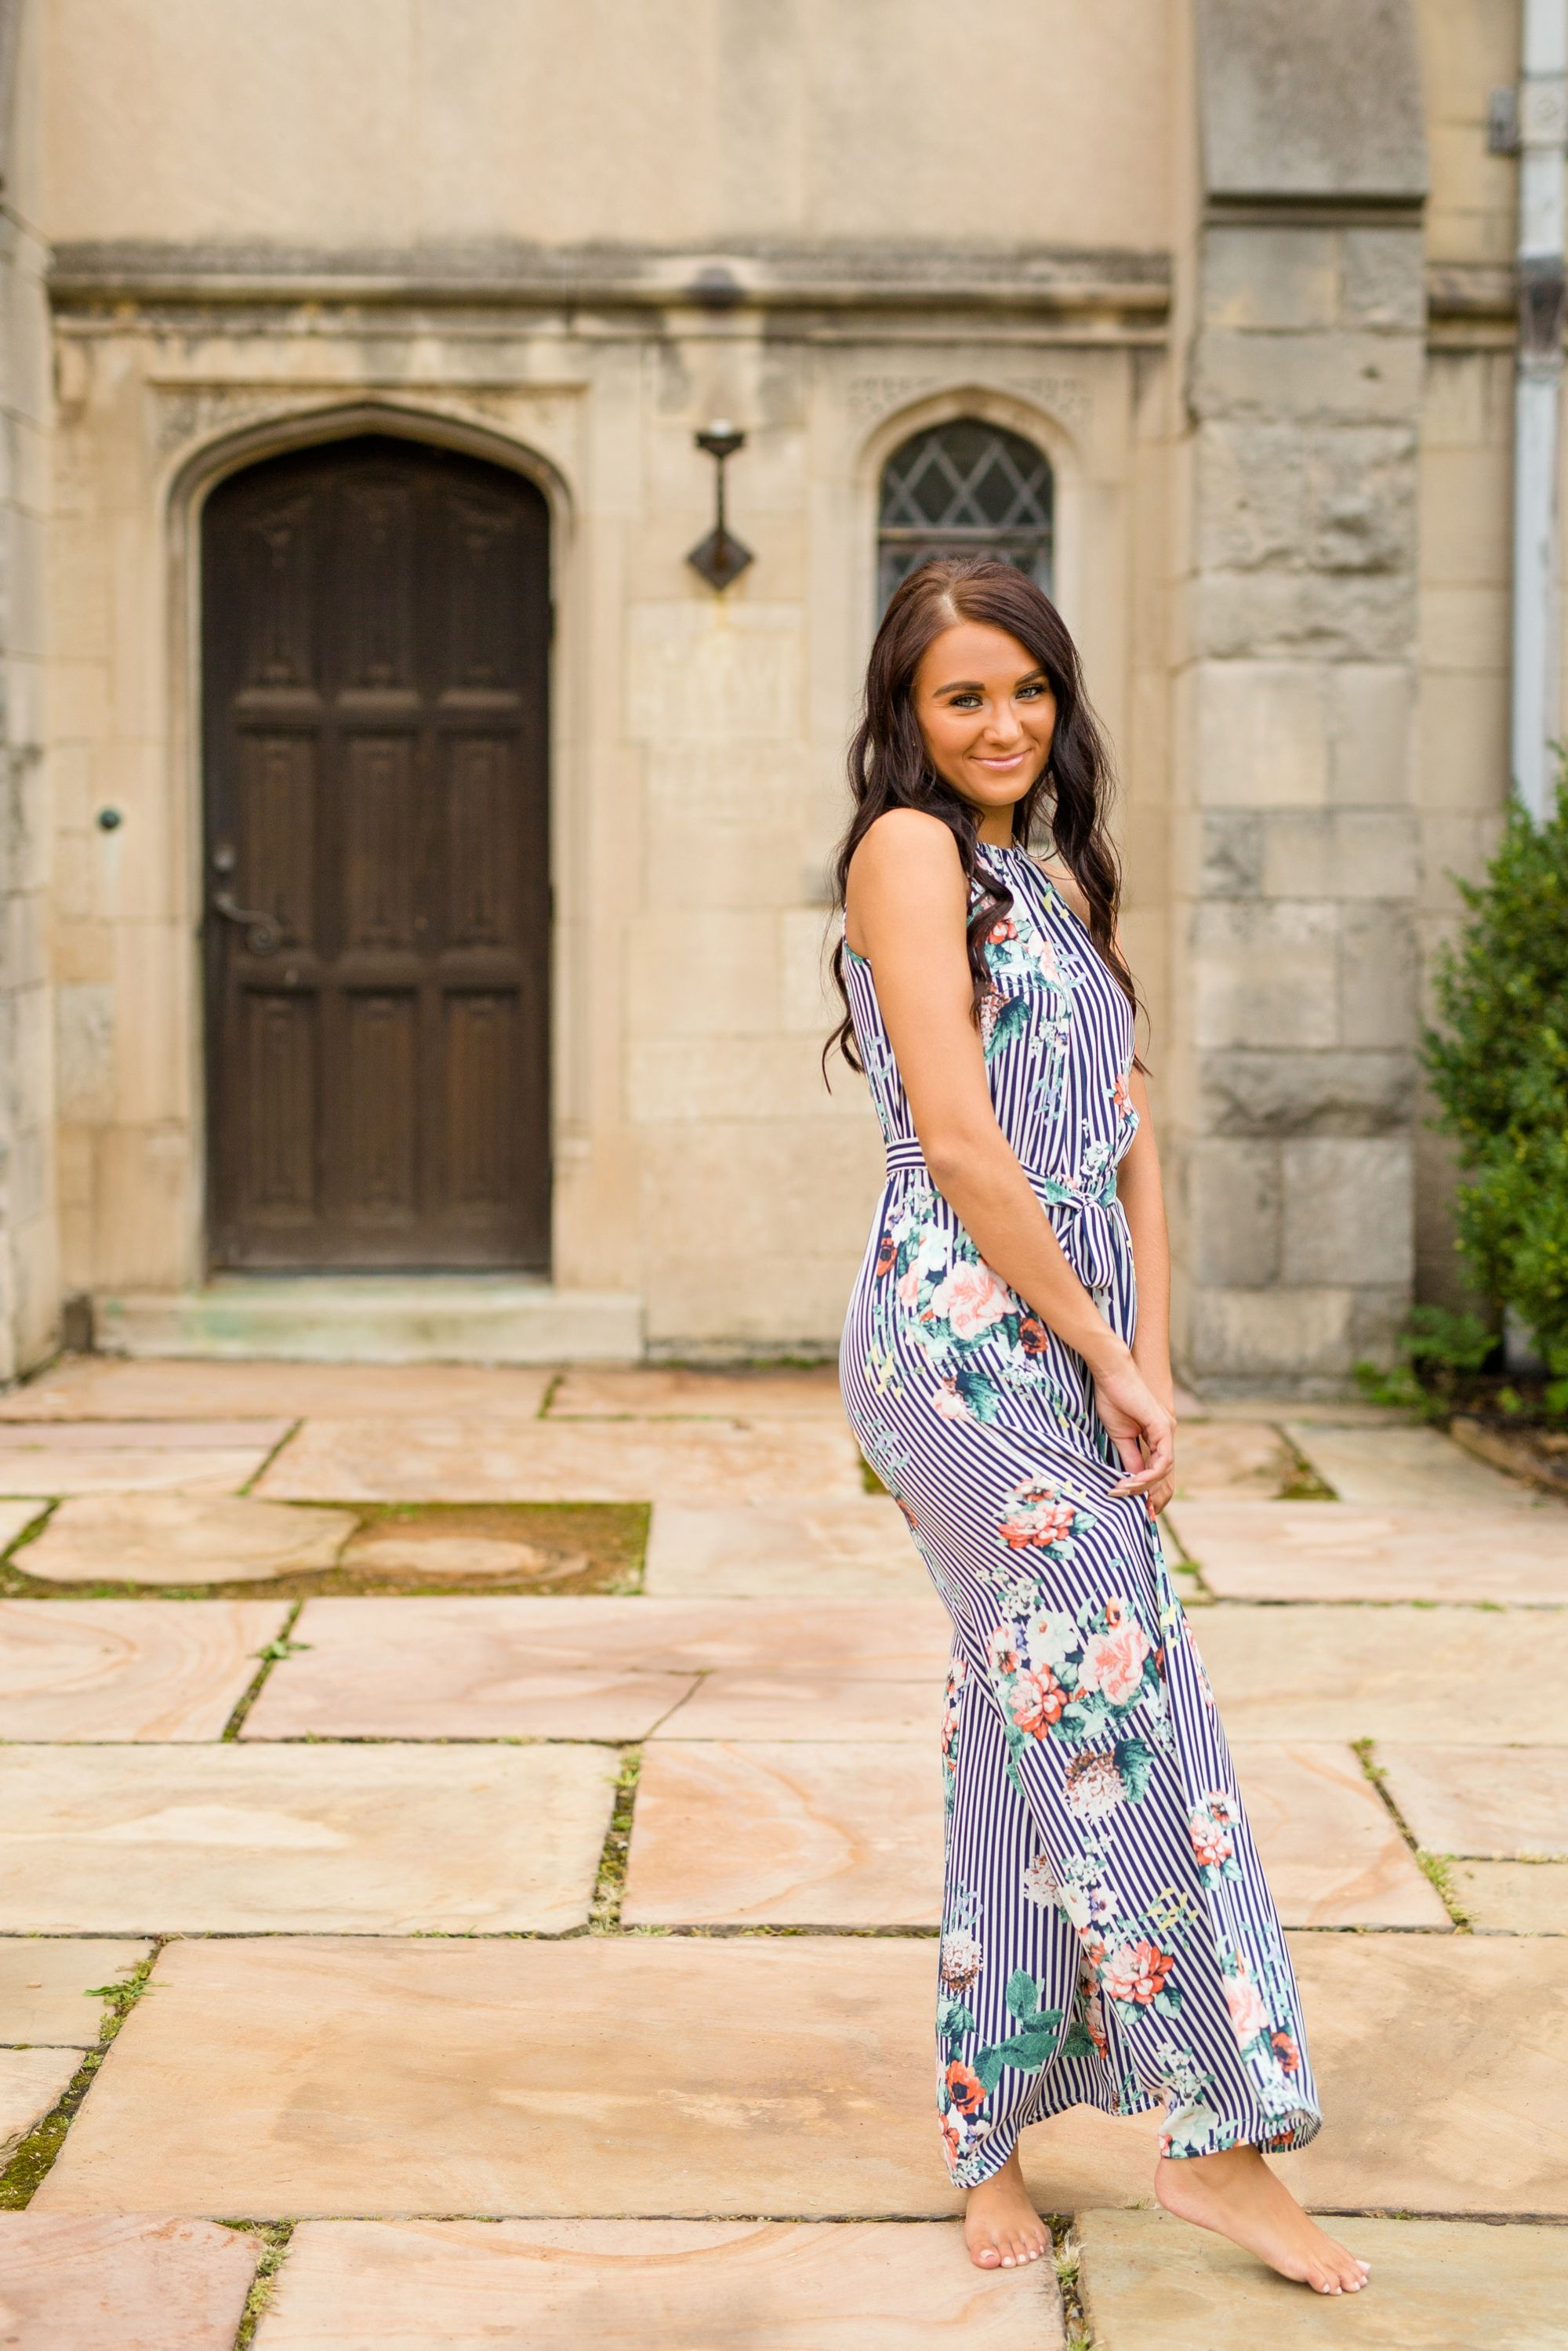 Maddy L Hartwood Acres Senior Photos With Images Outfit